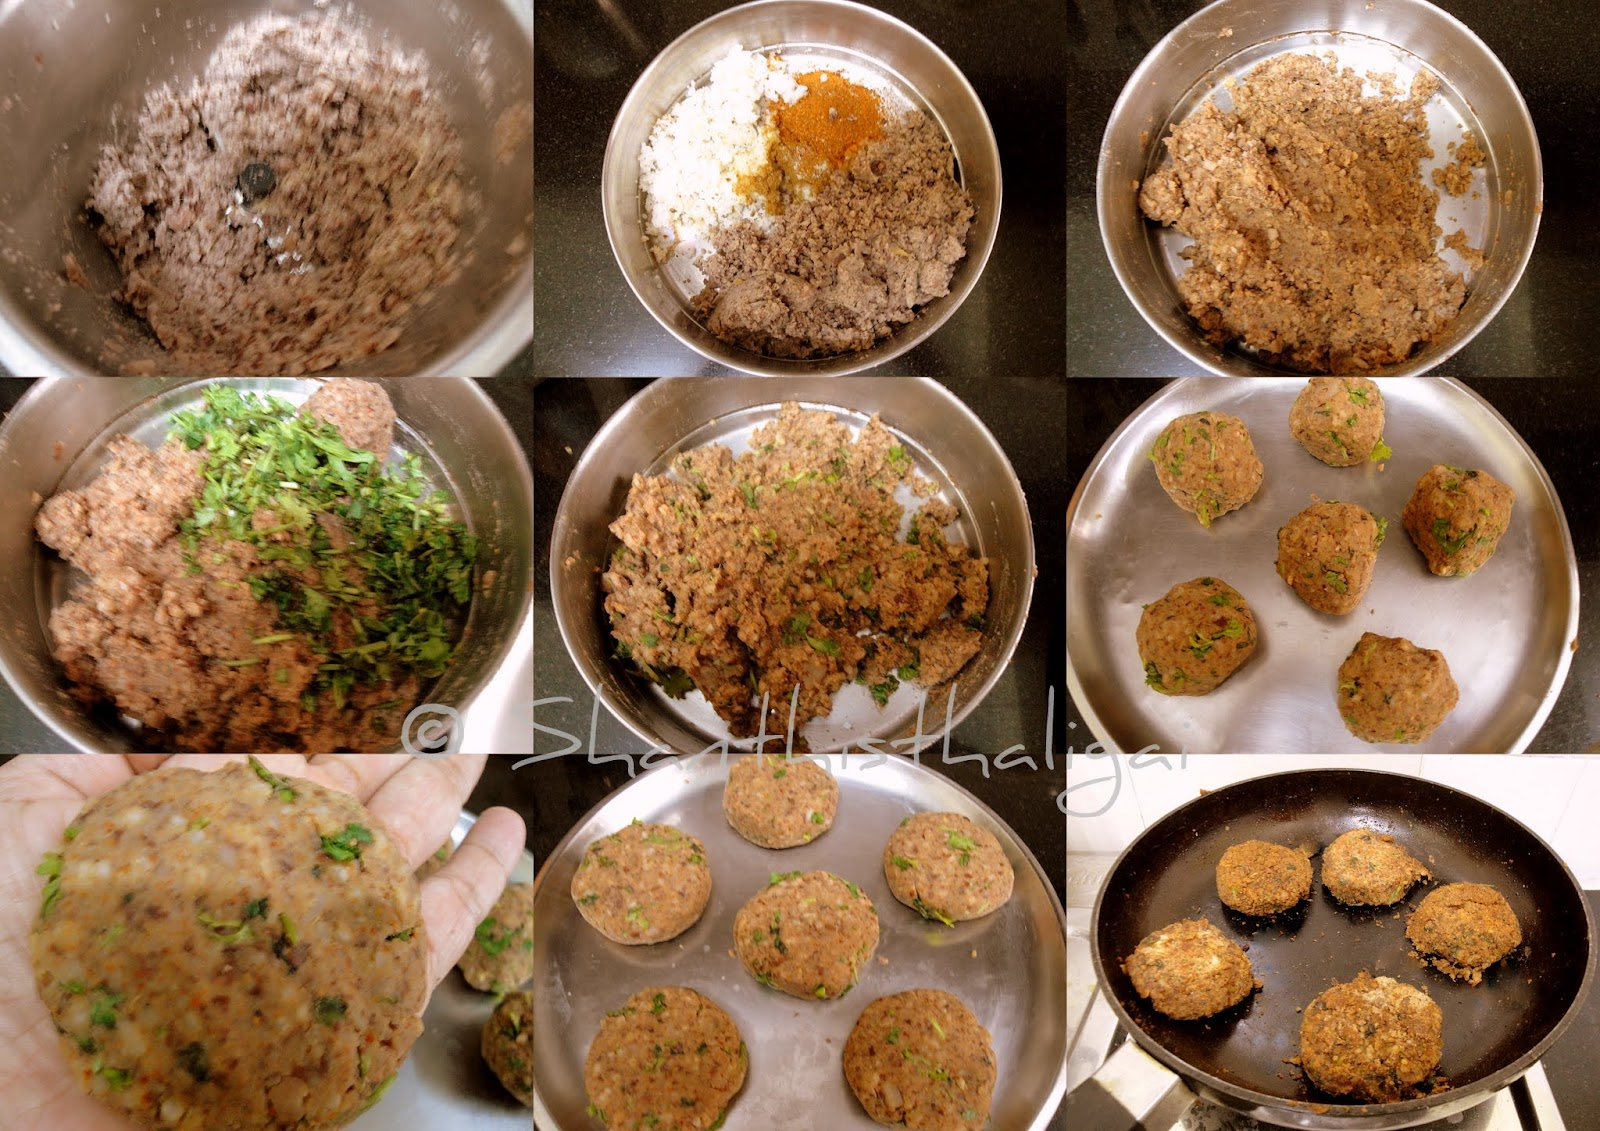 HOW TO MAKE MILLET RED KIDNEY BEAN KEBAB, HOW TO MAKE MILLET RAJMA PATTICE, HOW TO MAKE MILLET BEAN PATTIES